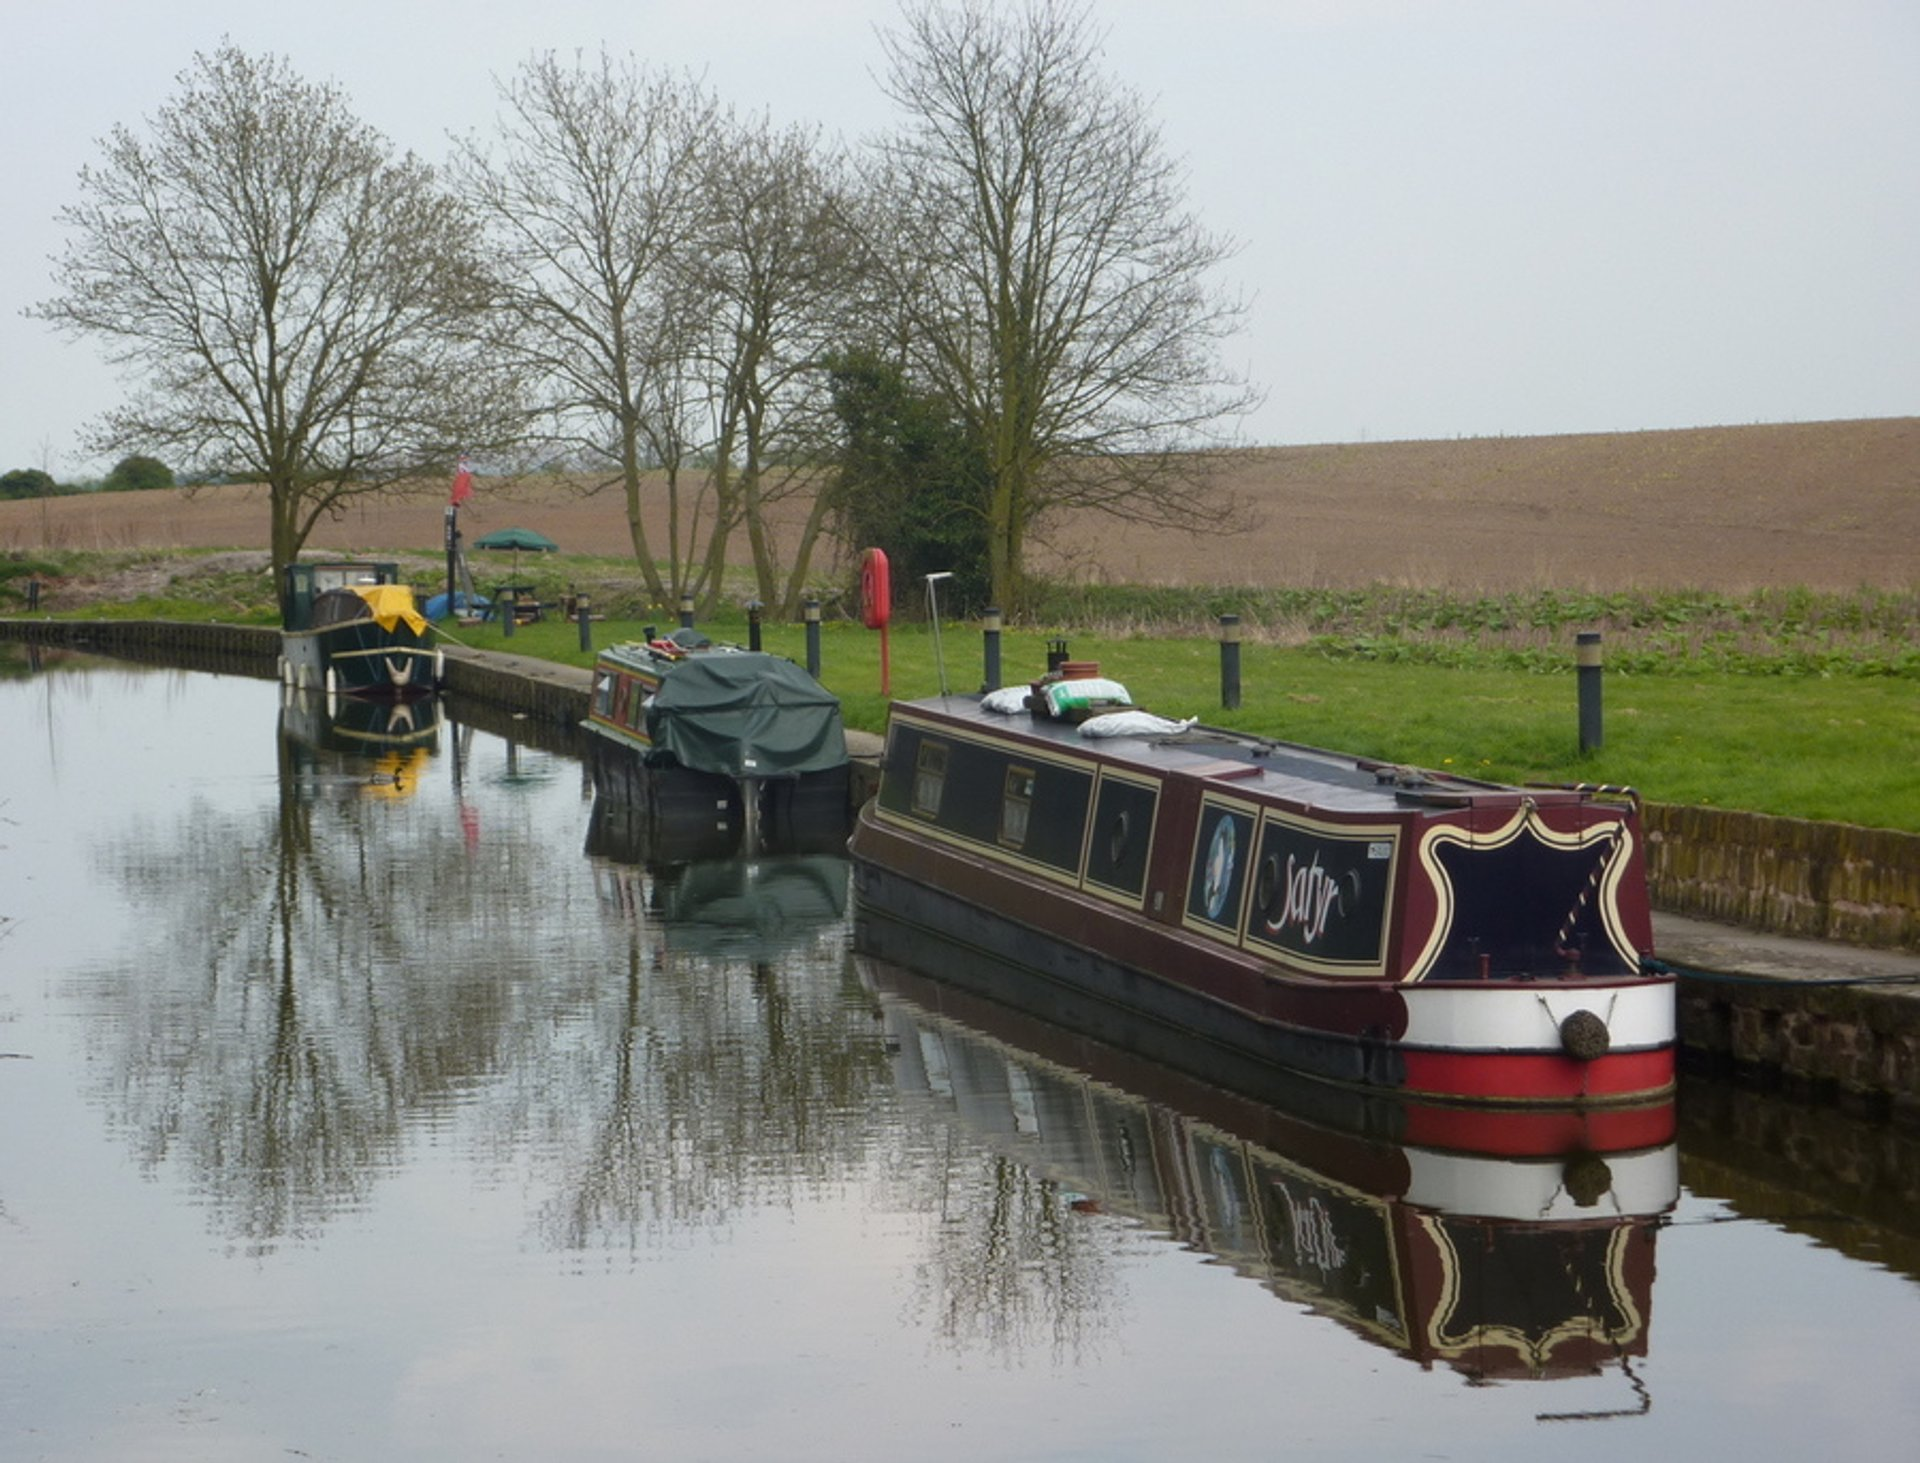 Boating along Chesterfield Canal in England - Best Season 2020